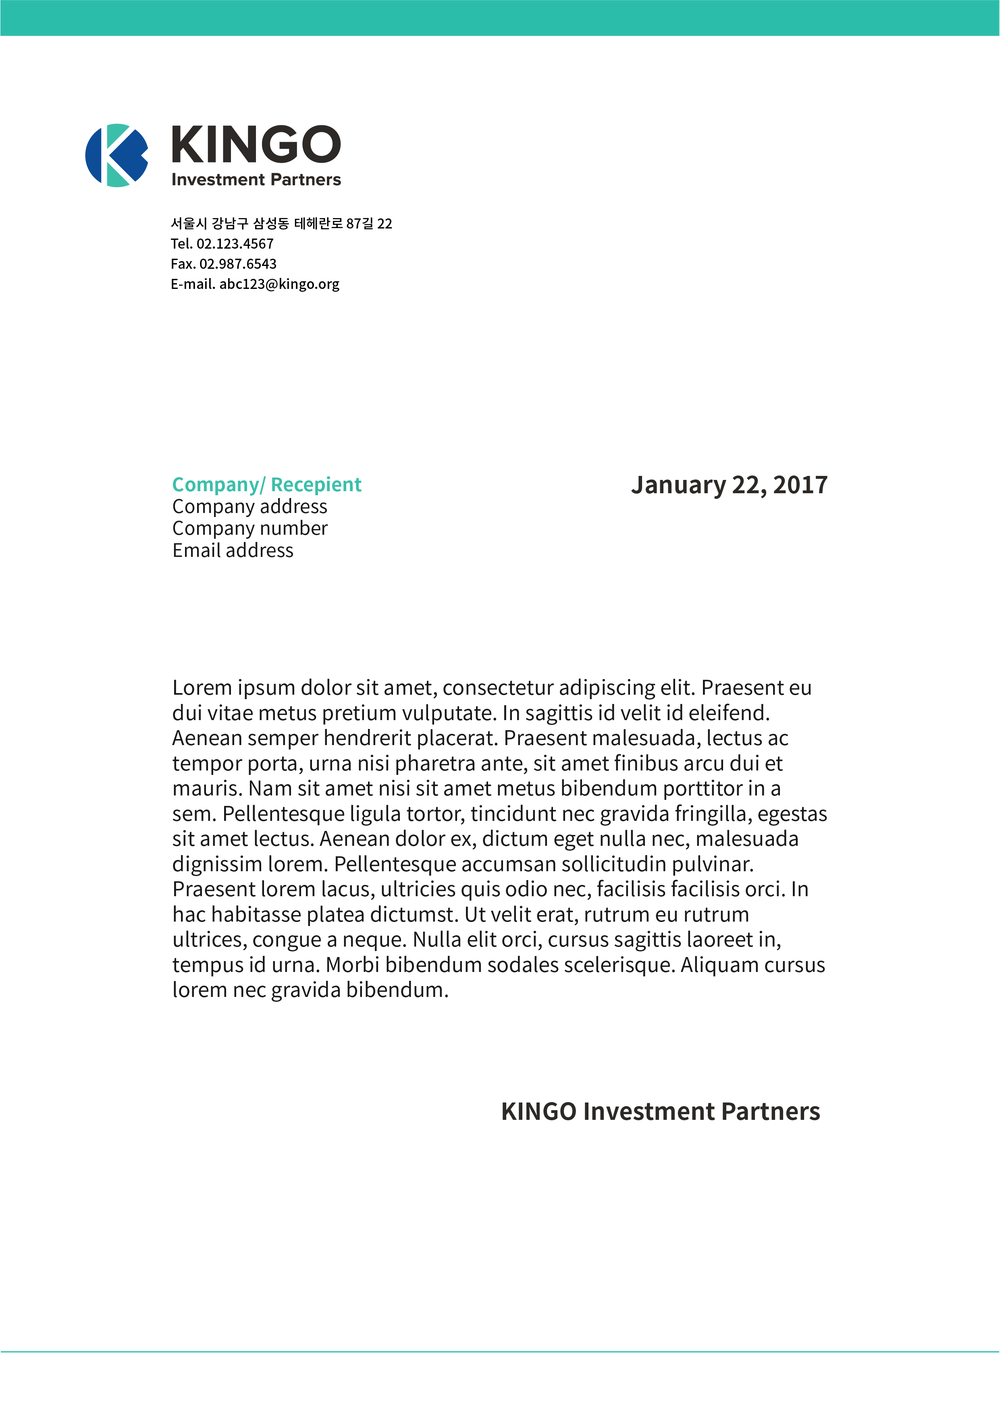 Kingo_Letterhead-Business Mail_Kingo Letterhead.png